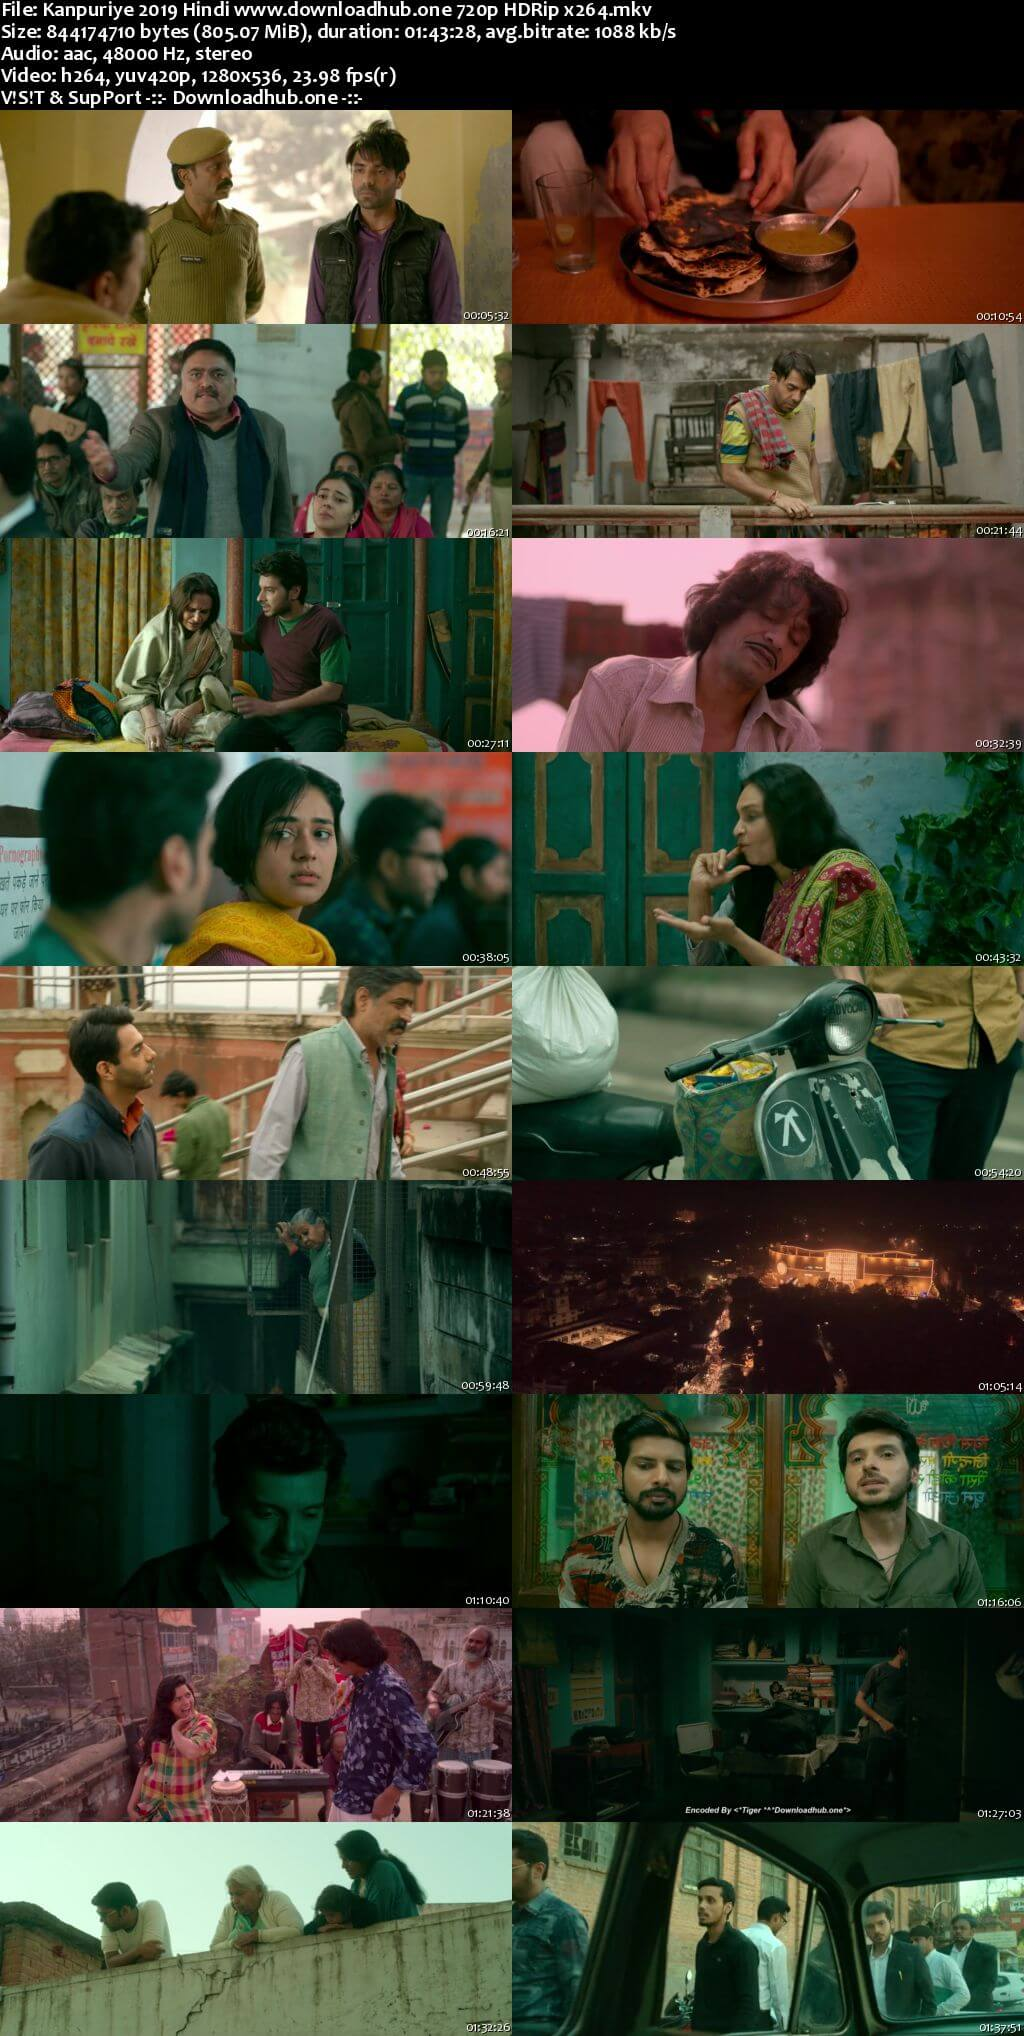 Kanpuriye 2019 Hindi 720p HDRip x264